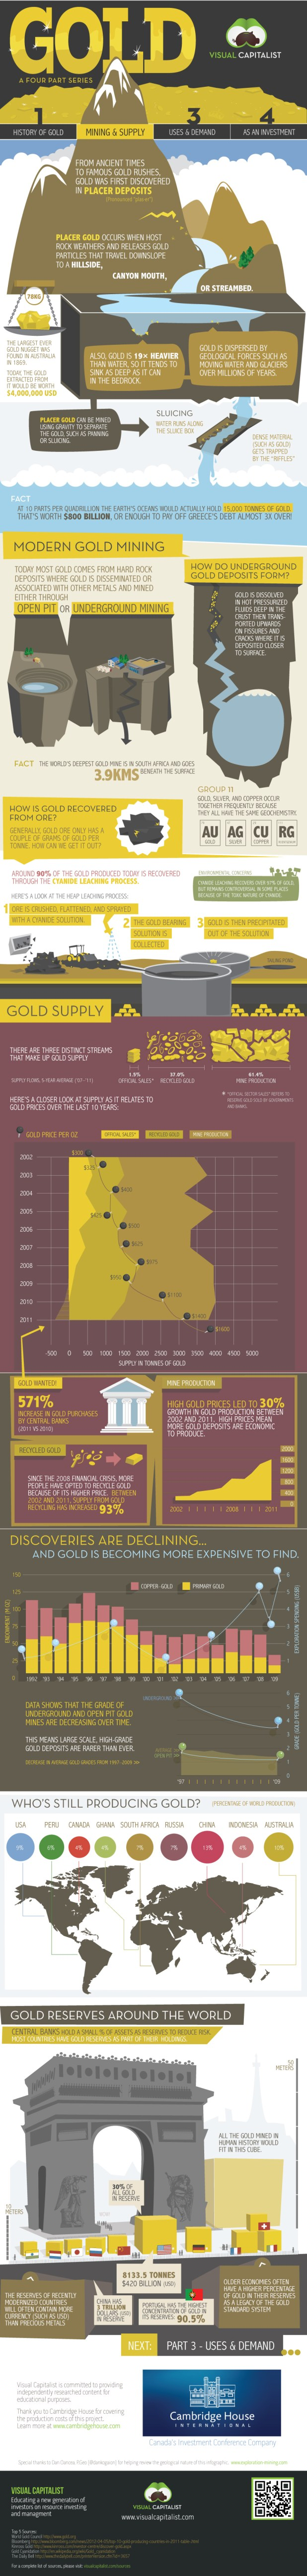 gold-mining-supply-infographic-2